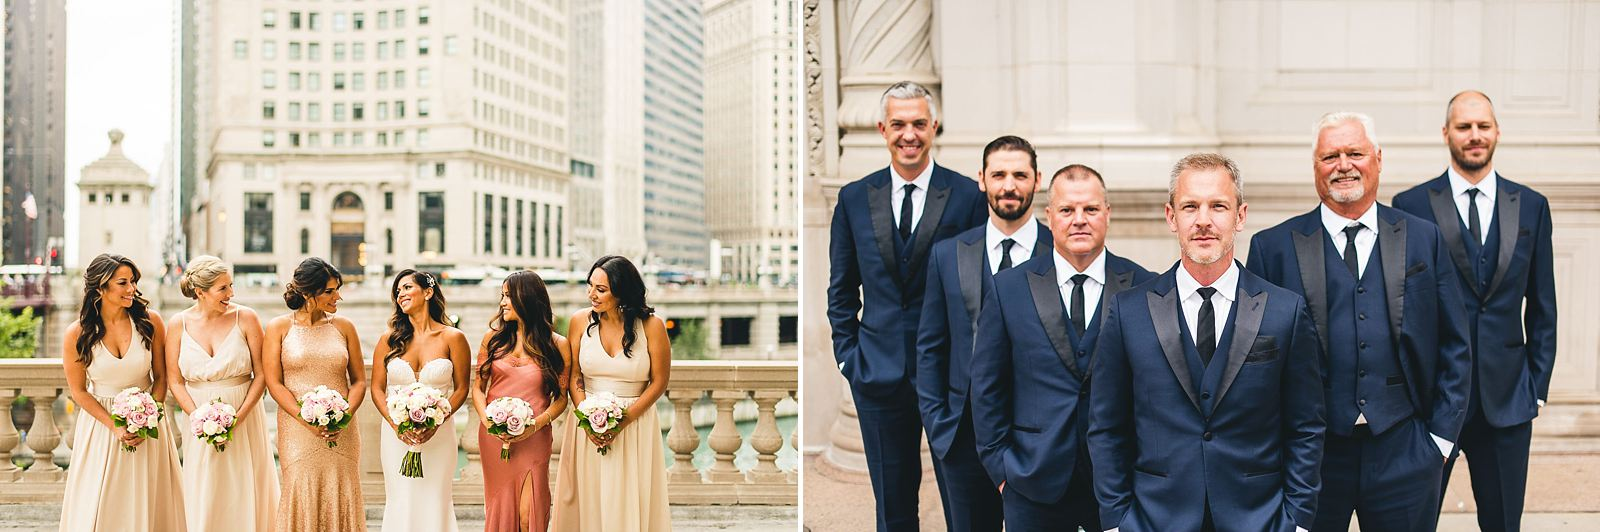 22 fun bridal party photos symmetry - Intercontinental Chicago Hotel Wedding // Lili + Danny